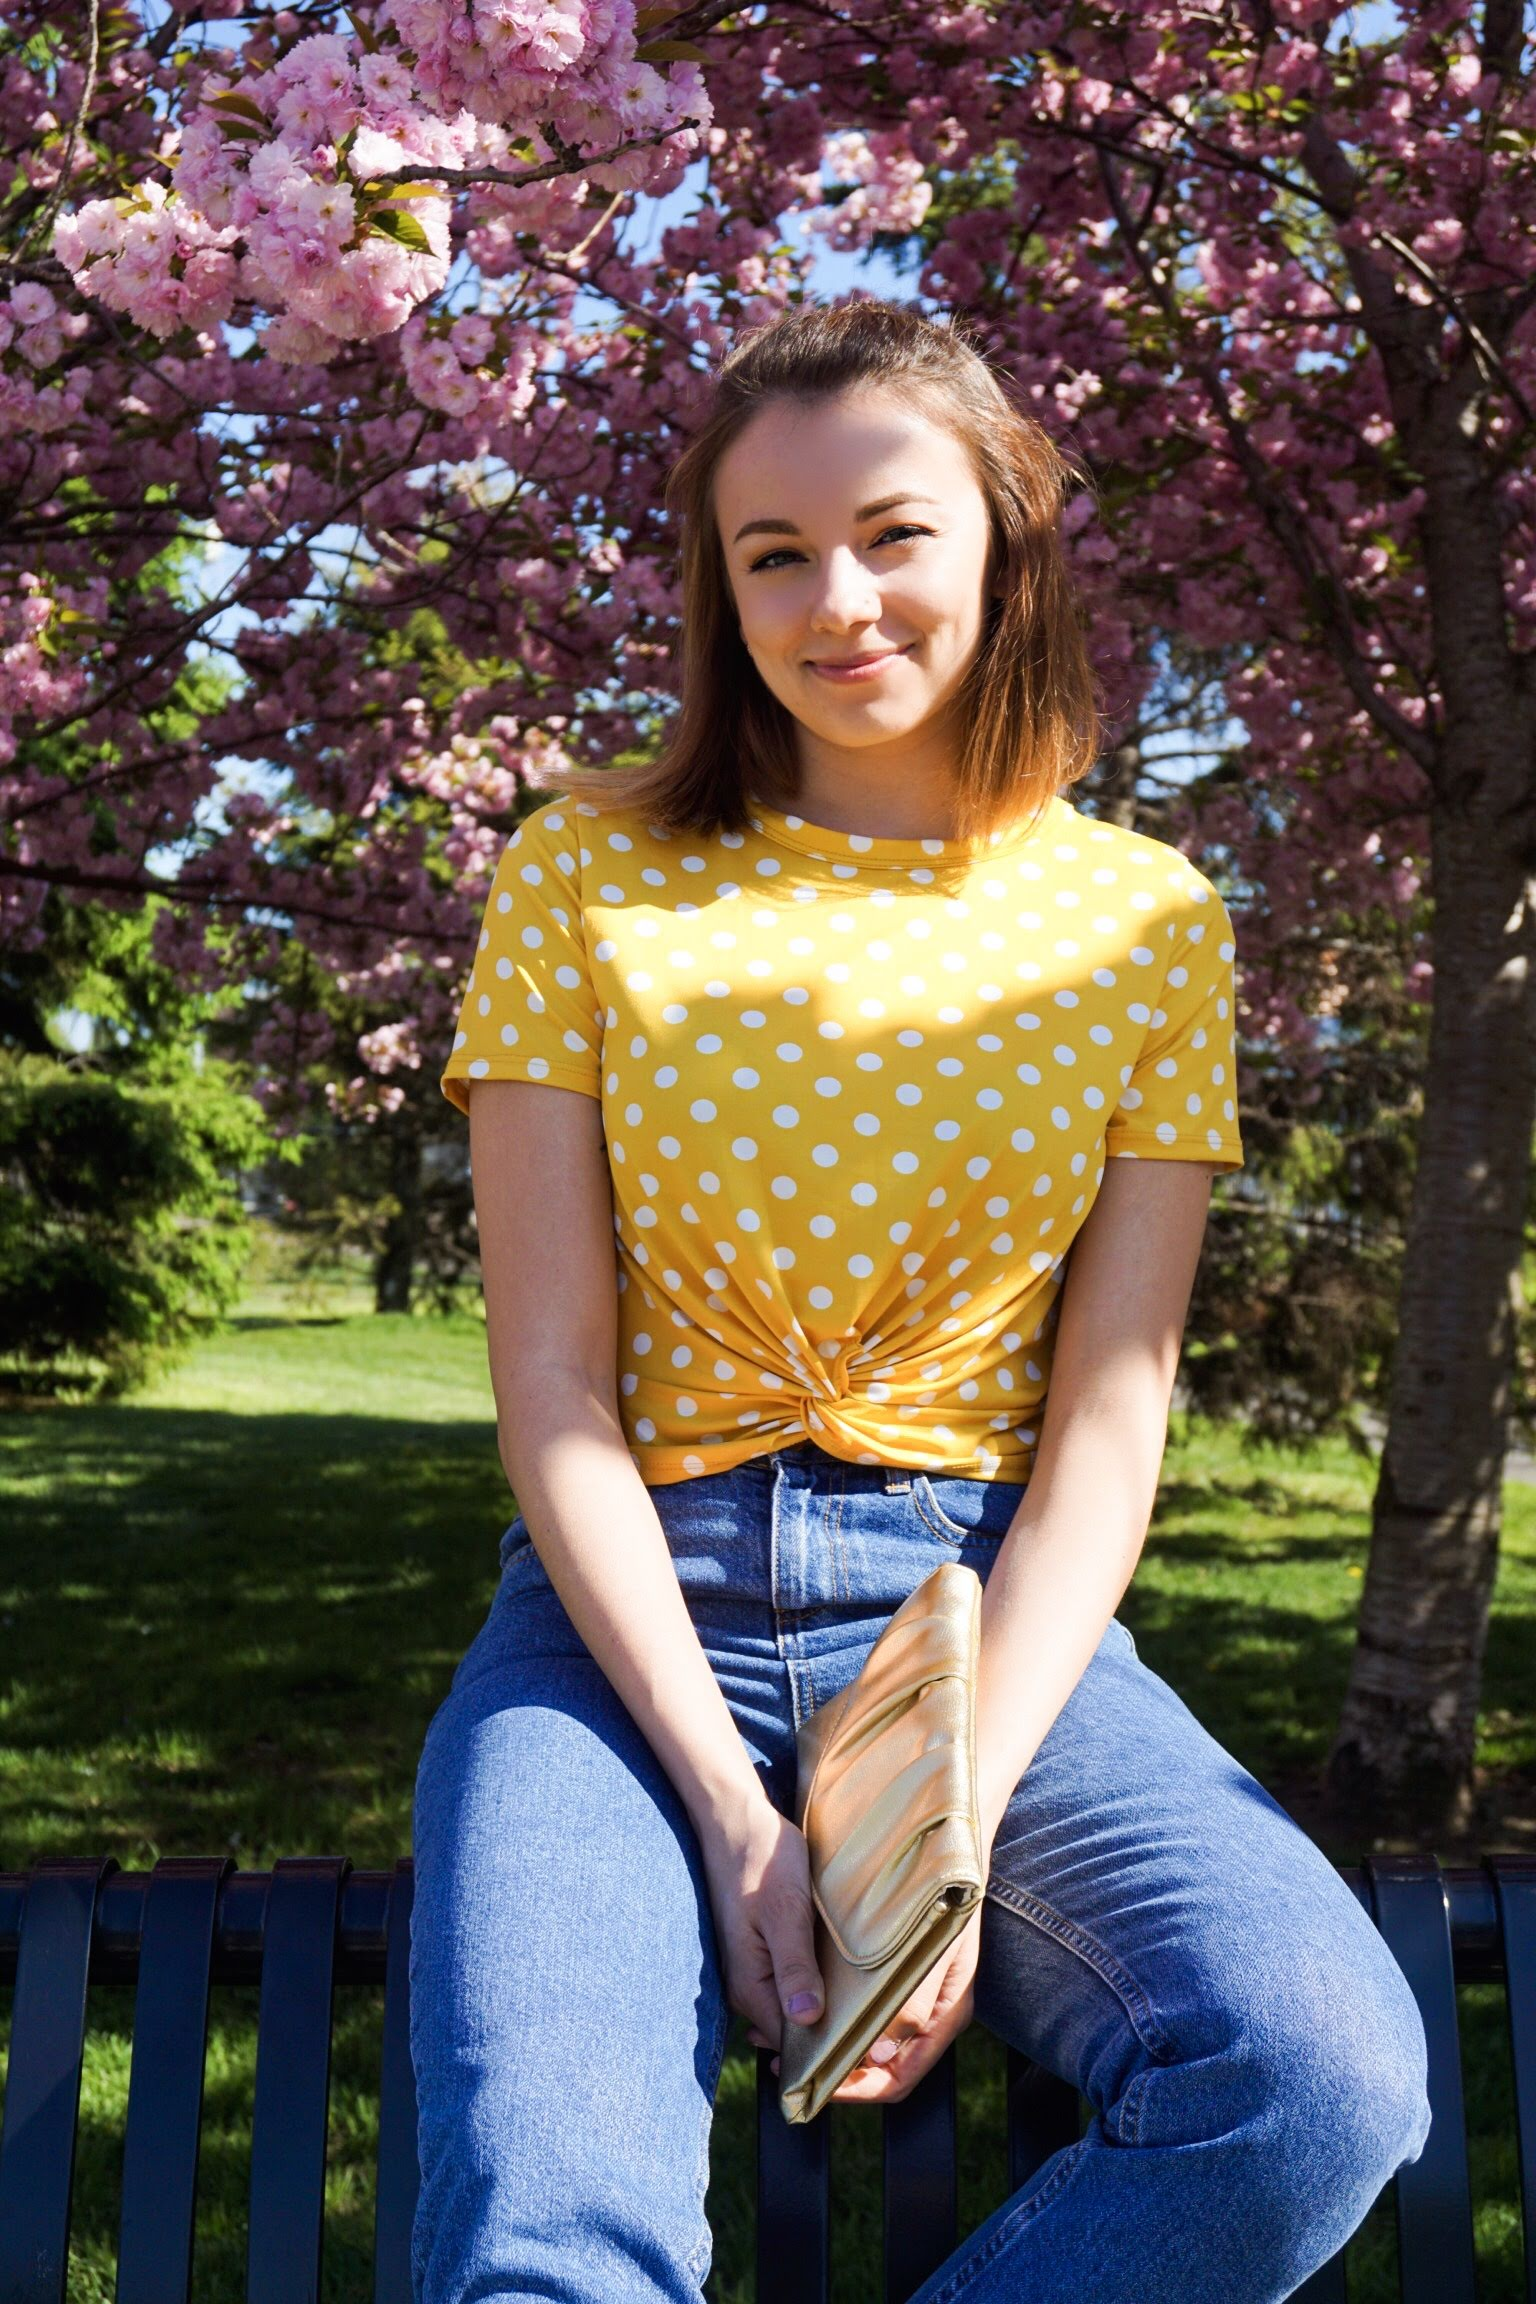 Fashion blogger looking at the camera, wearing a yellow and white polka dots crop top, blue denim jeans, and a golden clutch.